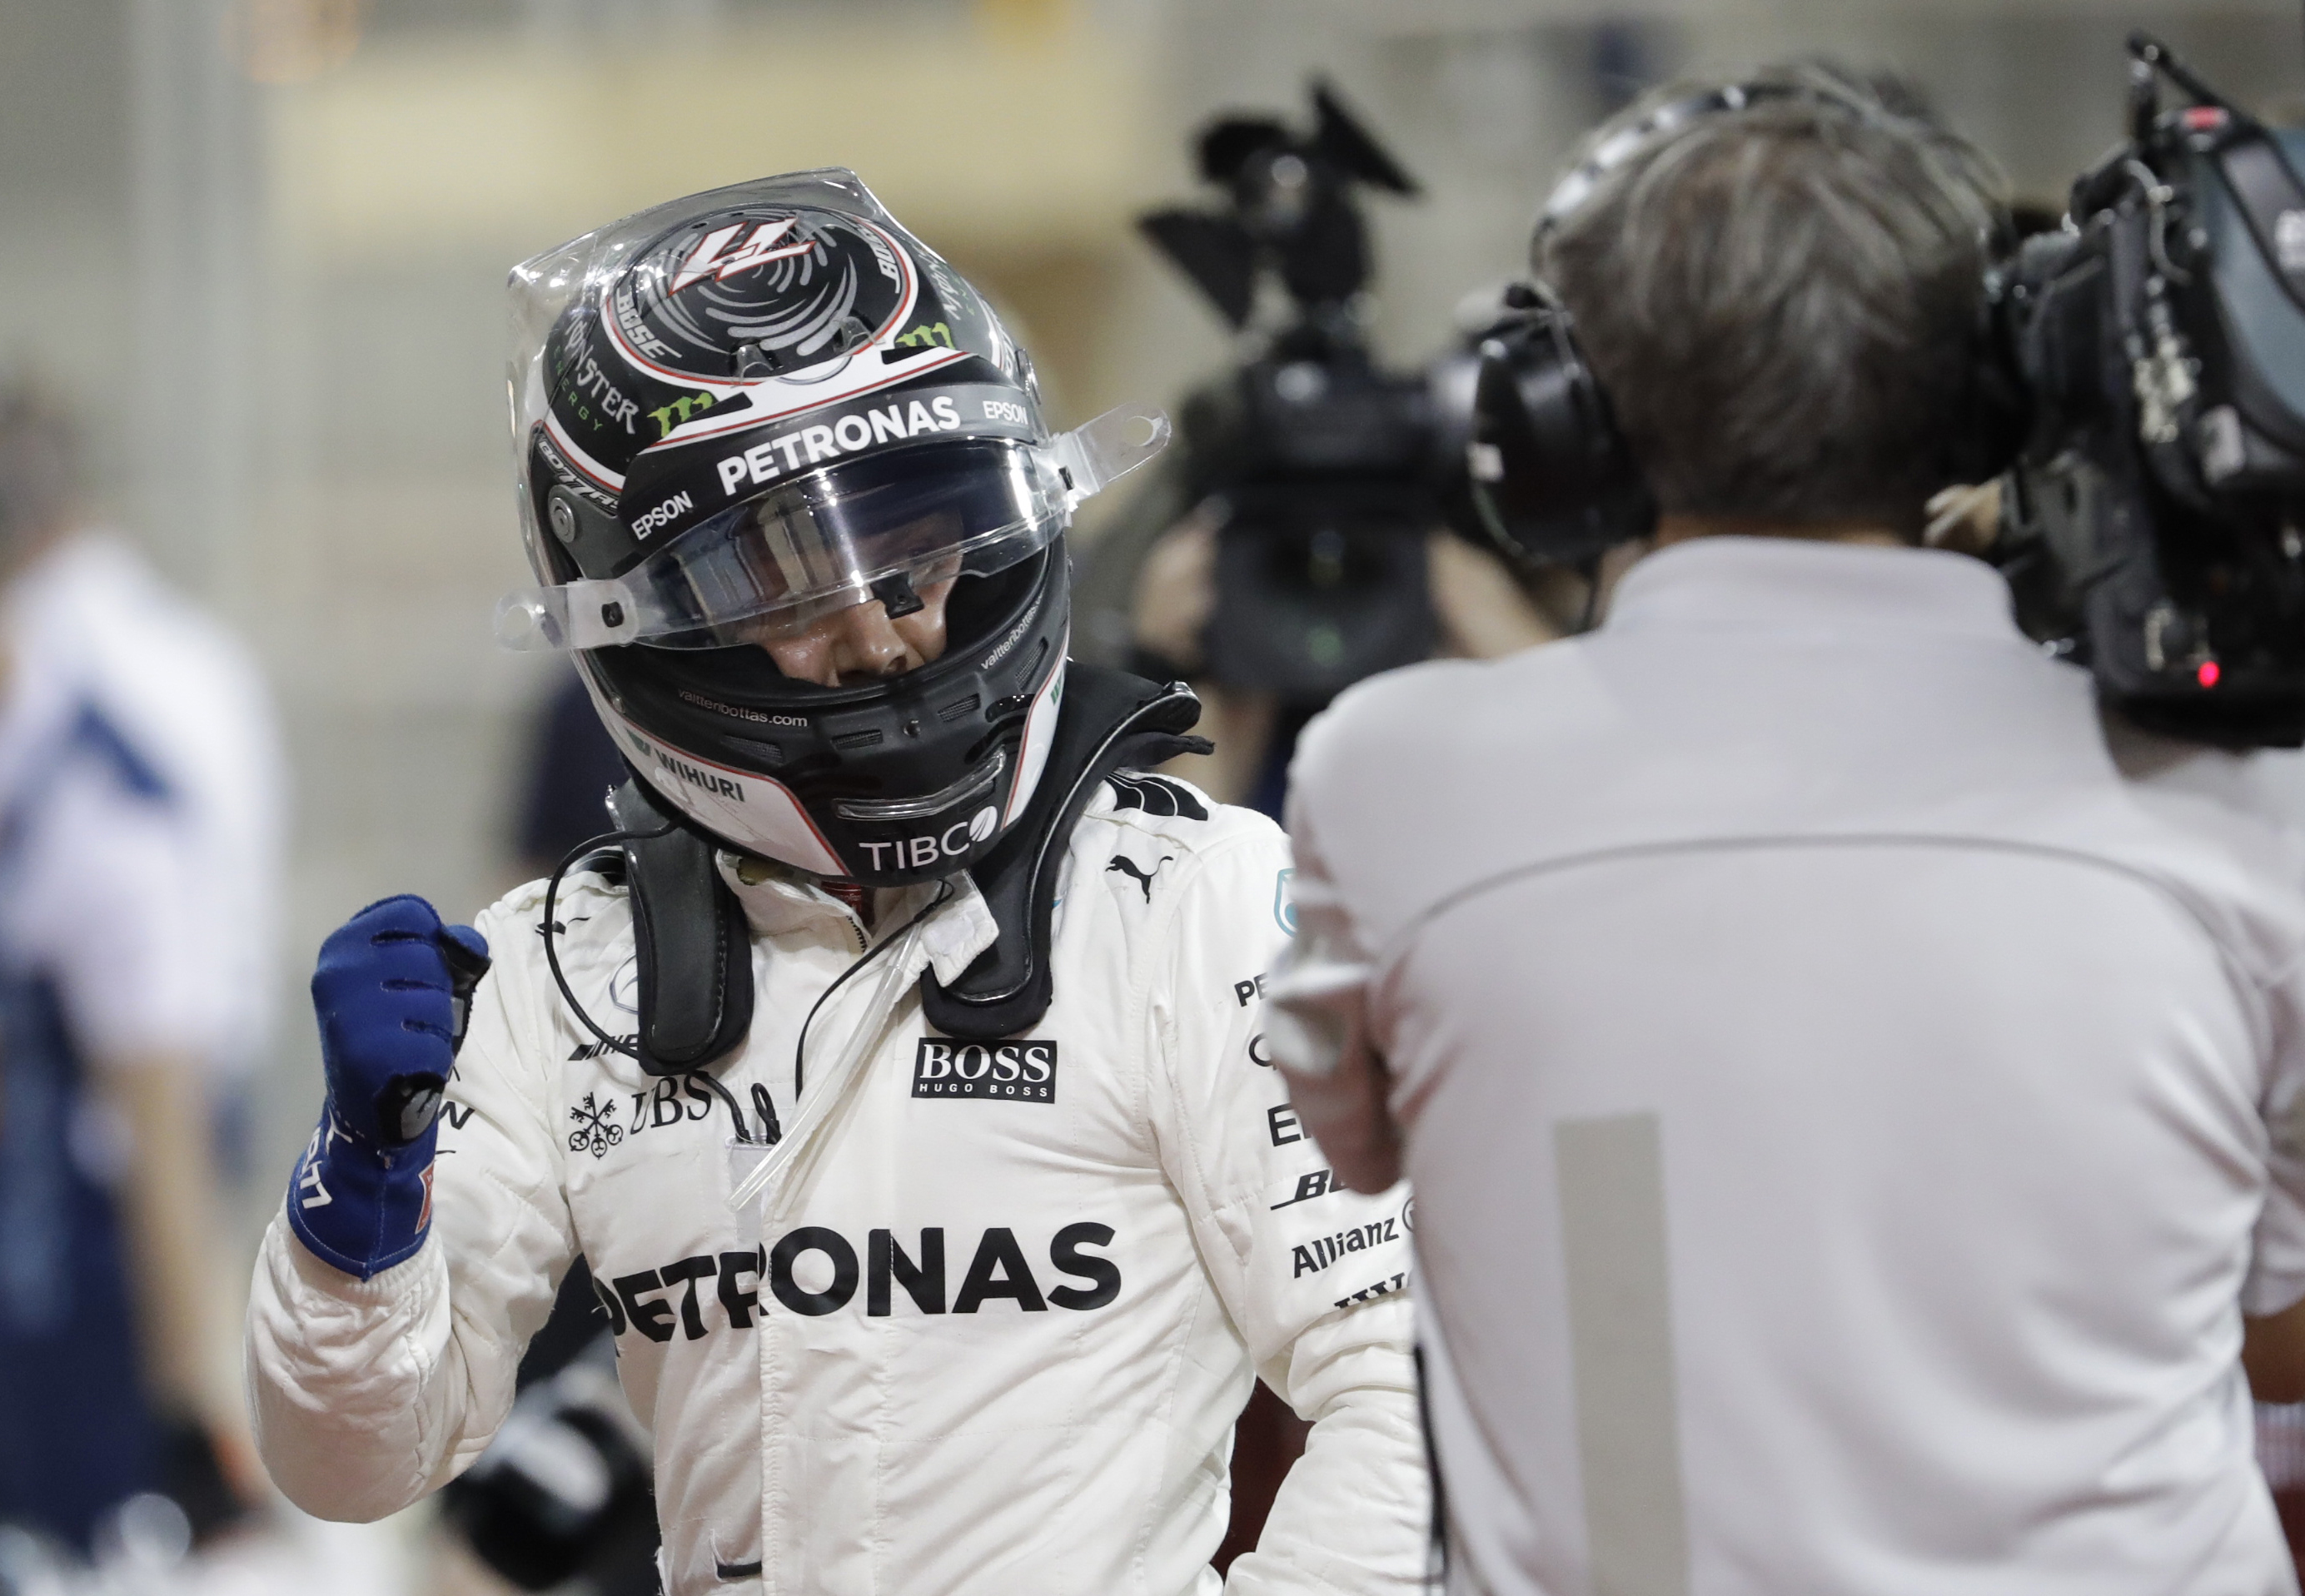 Mercedes driver Valtteri Bottas of Finland gestures after he clocked the fastest time during qualifying for the Bahrain Formula One Grand Prix, at the Bahrain International Circuit in Sakhir, Bahrain, Saturday, April 15. (AP Photo/Luca Bruno)